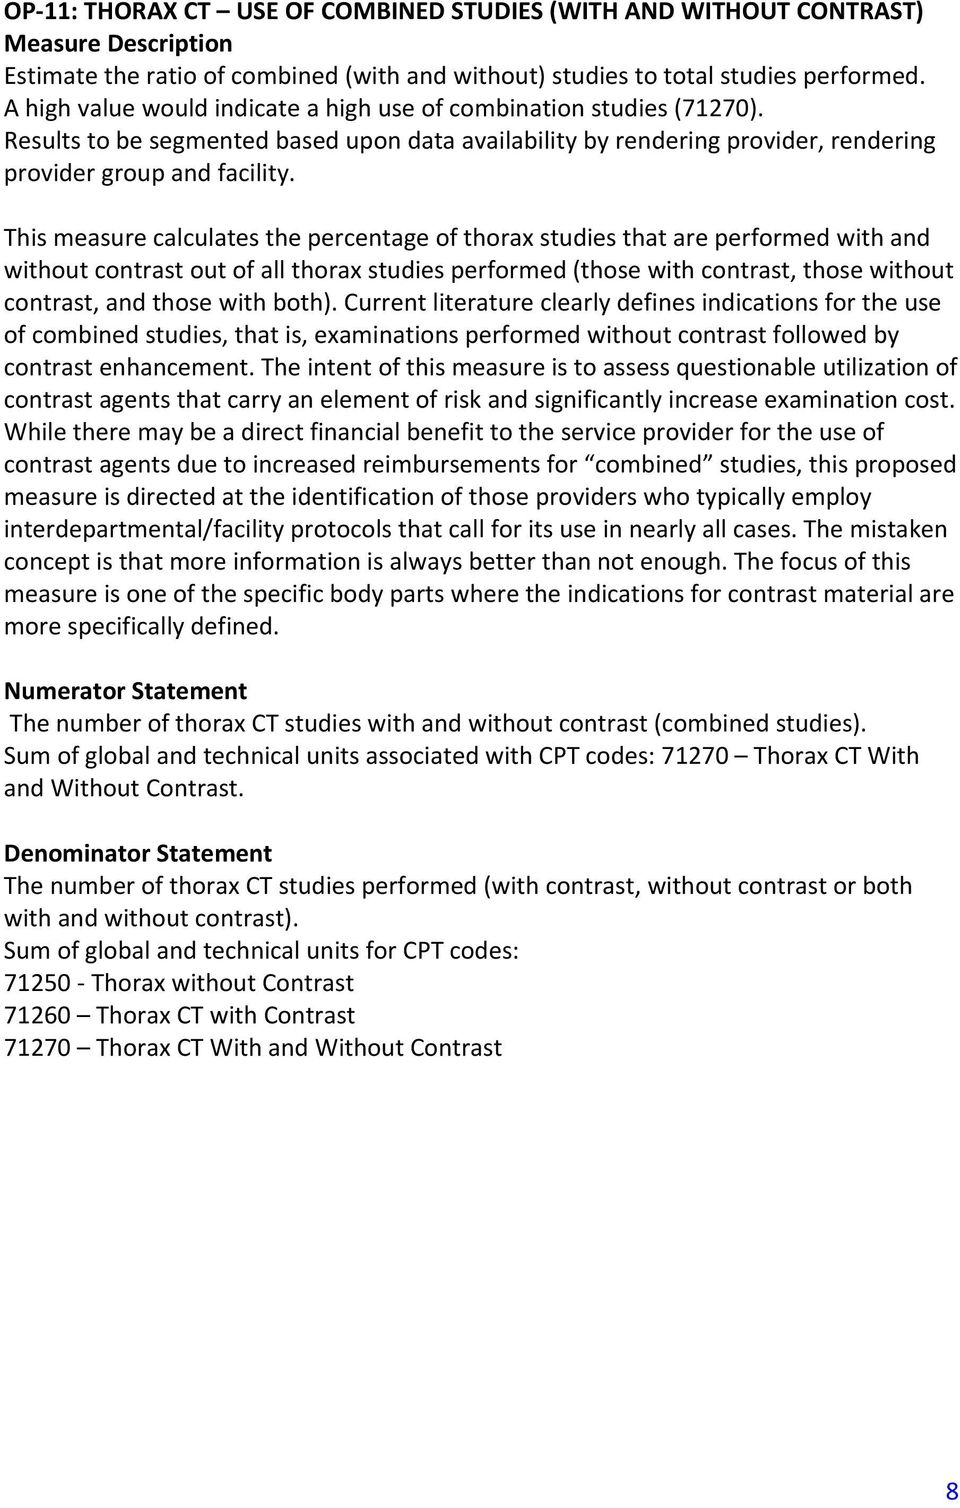 This measure calculates the percentage of thorax studies that are performed with and without contrast out of all thorax studies performed (those with contrast, those without contrast, and those with